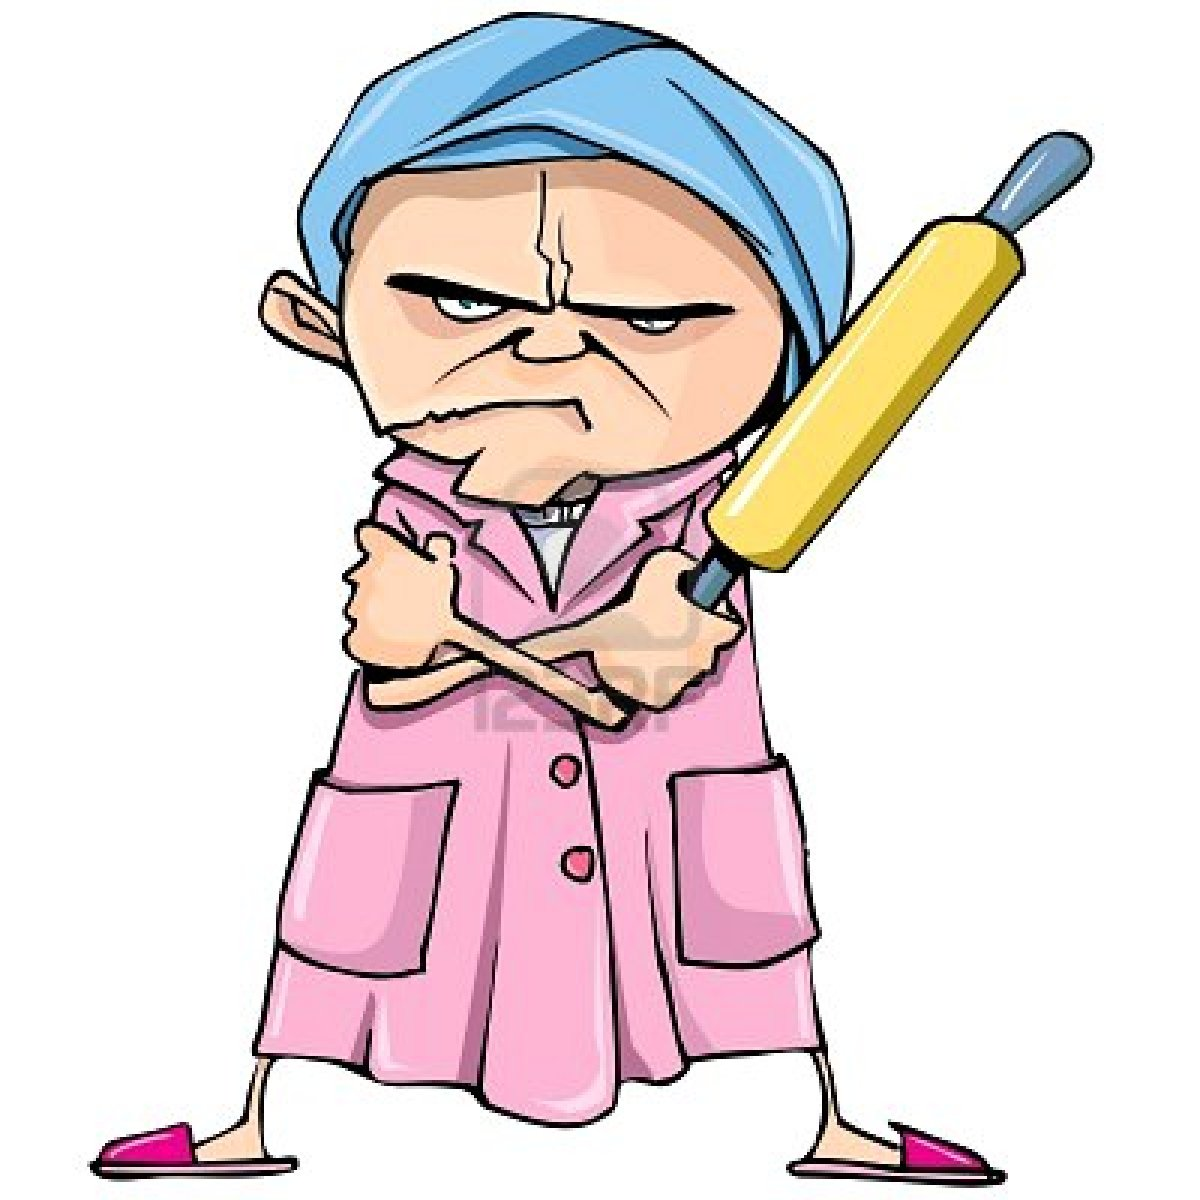 1200x1200 Cartoon Of Mean Old Woman With A Rolling Pin. Description